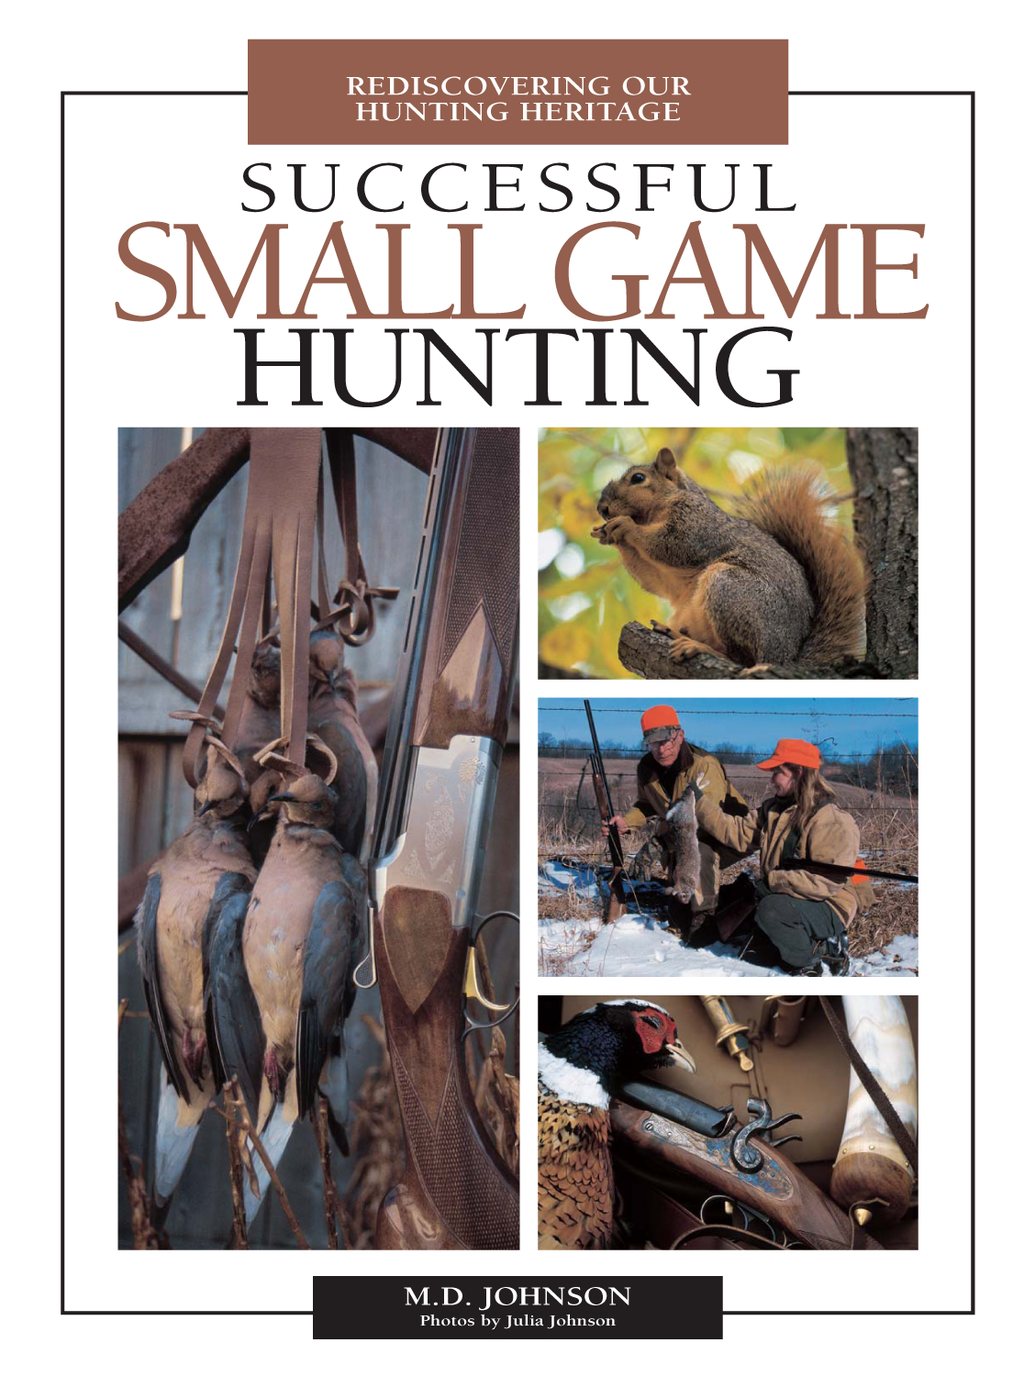 Successful Small Game Hunting Rediscovering Our Hunting Heritage